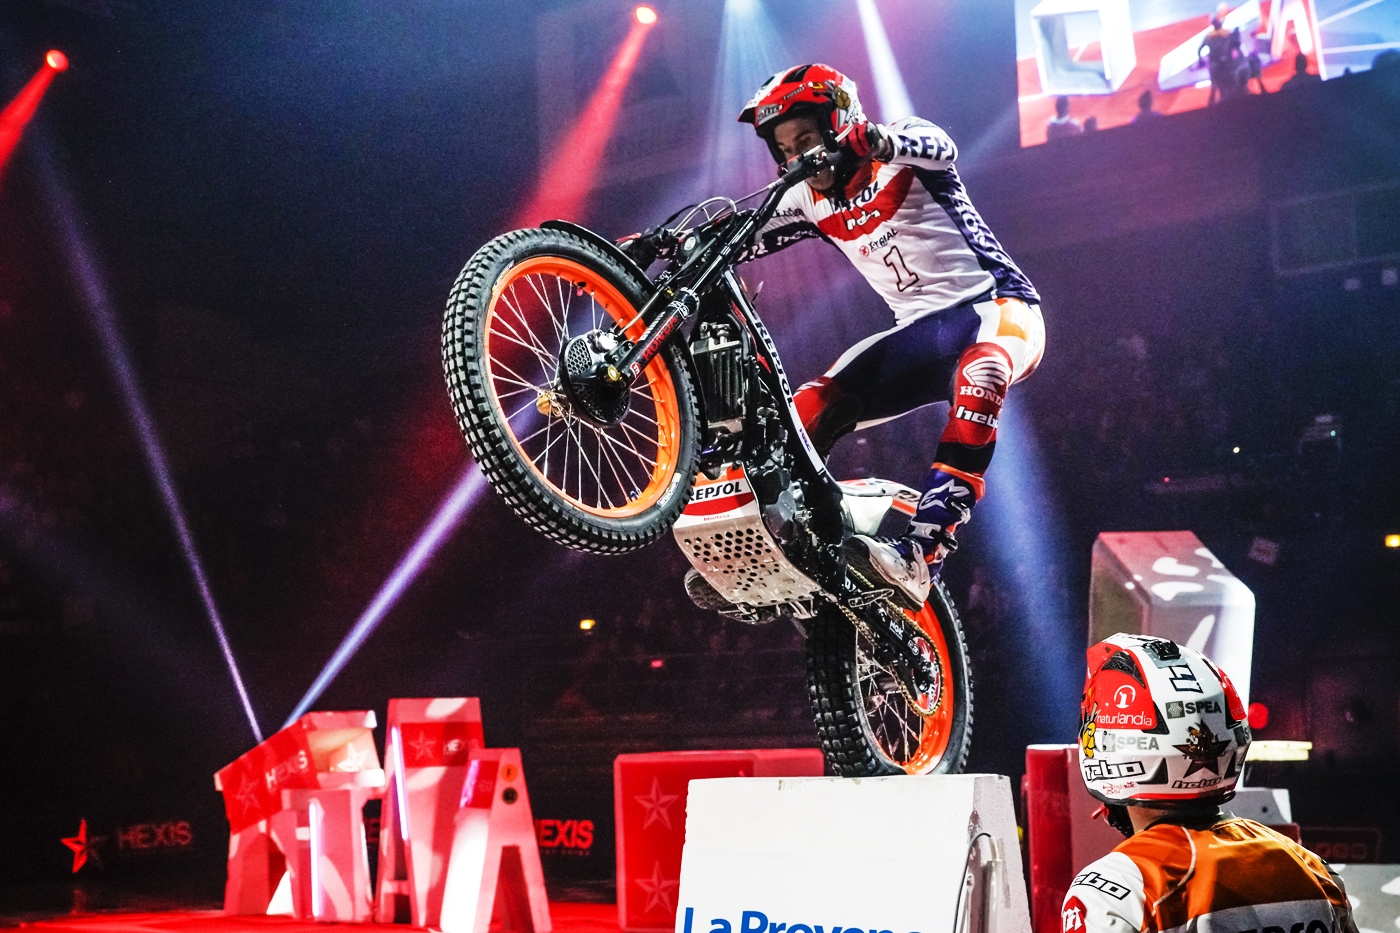 Participants announced for X-Trial Andorra la Vella